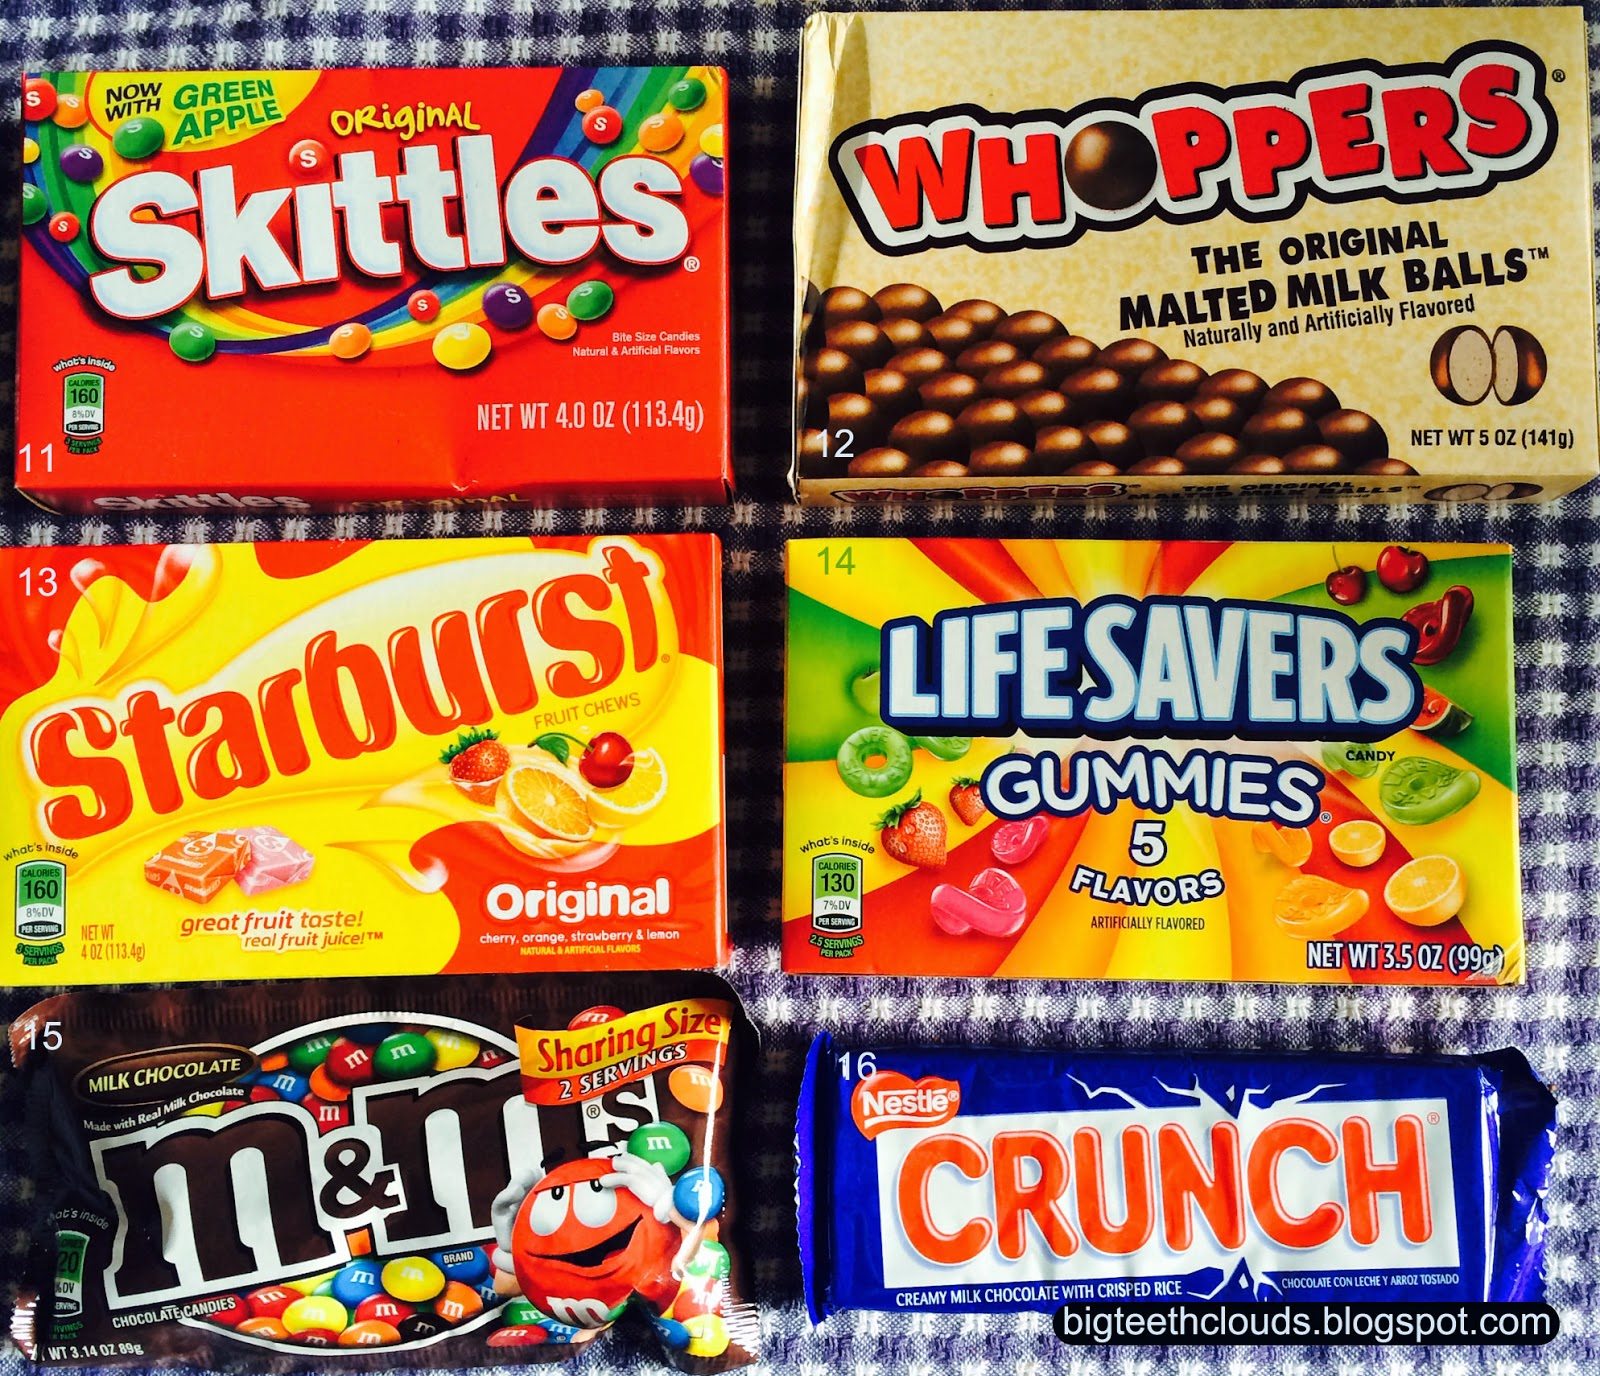 Candy bar awards: Skittles, Whoppers, Starburst, Lifesavers, M&Ms and Crunch